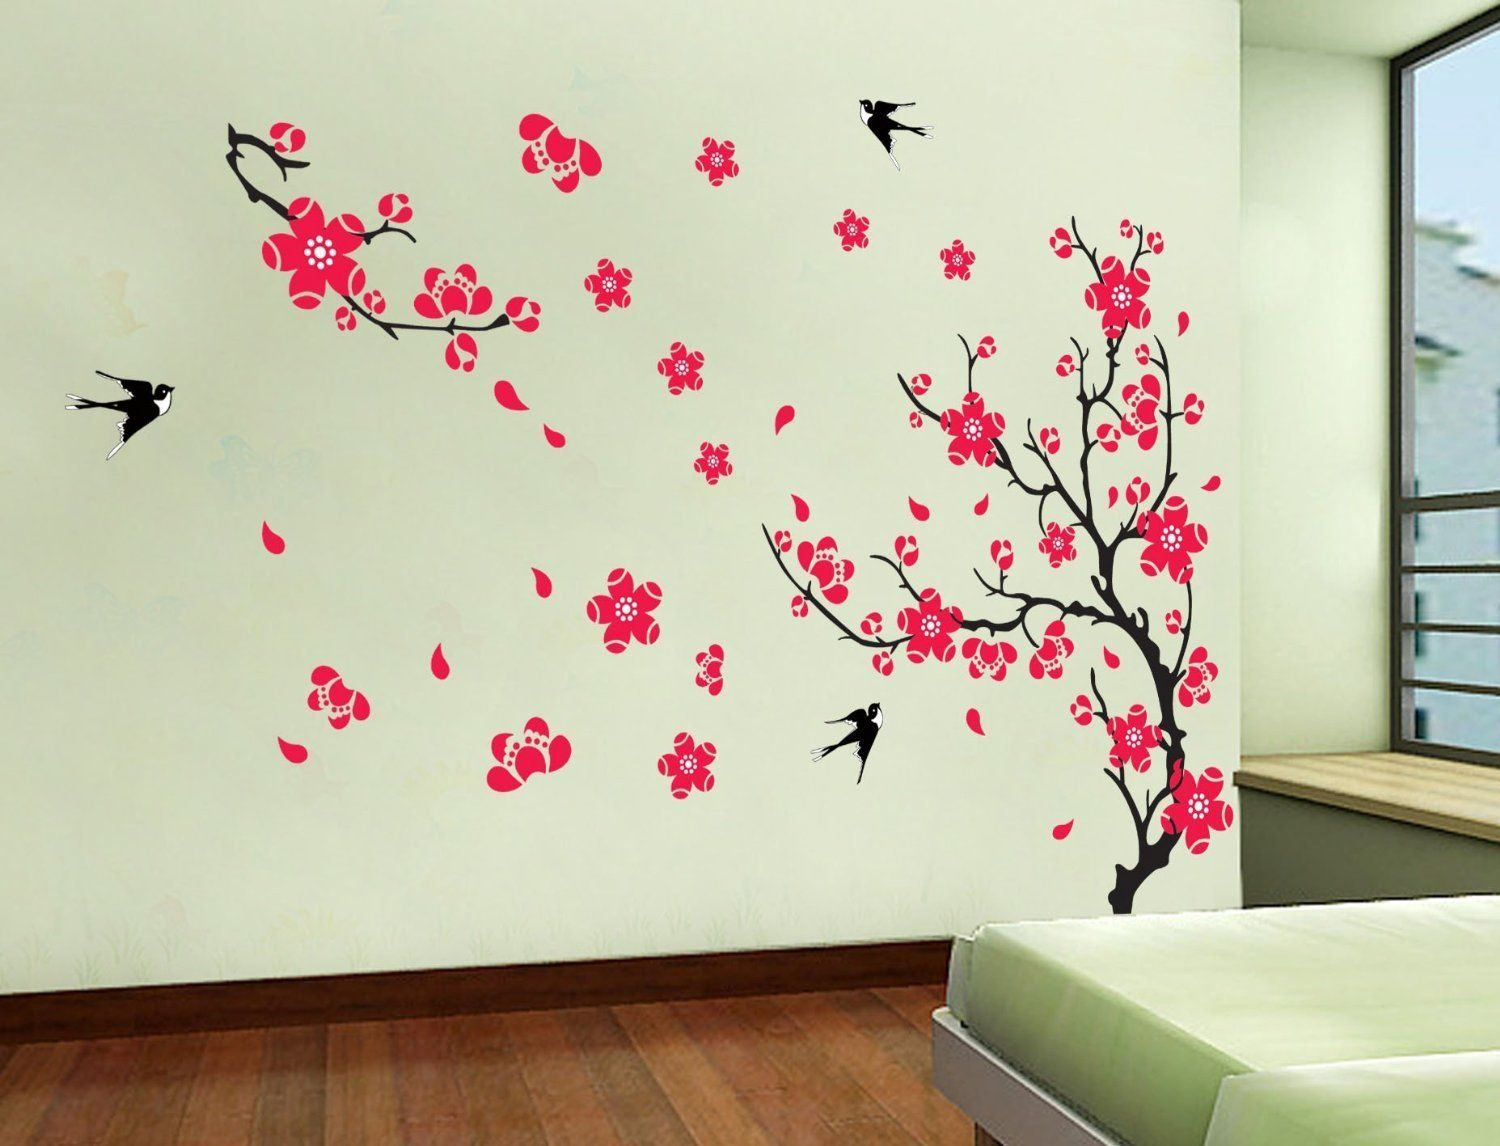 yyone plum blossom red flowers tree branch swallows art wall mural home decor wall sticker. Black Bedroom Furniture Sets. Home Design Ideas